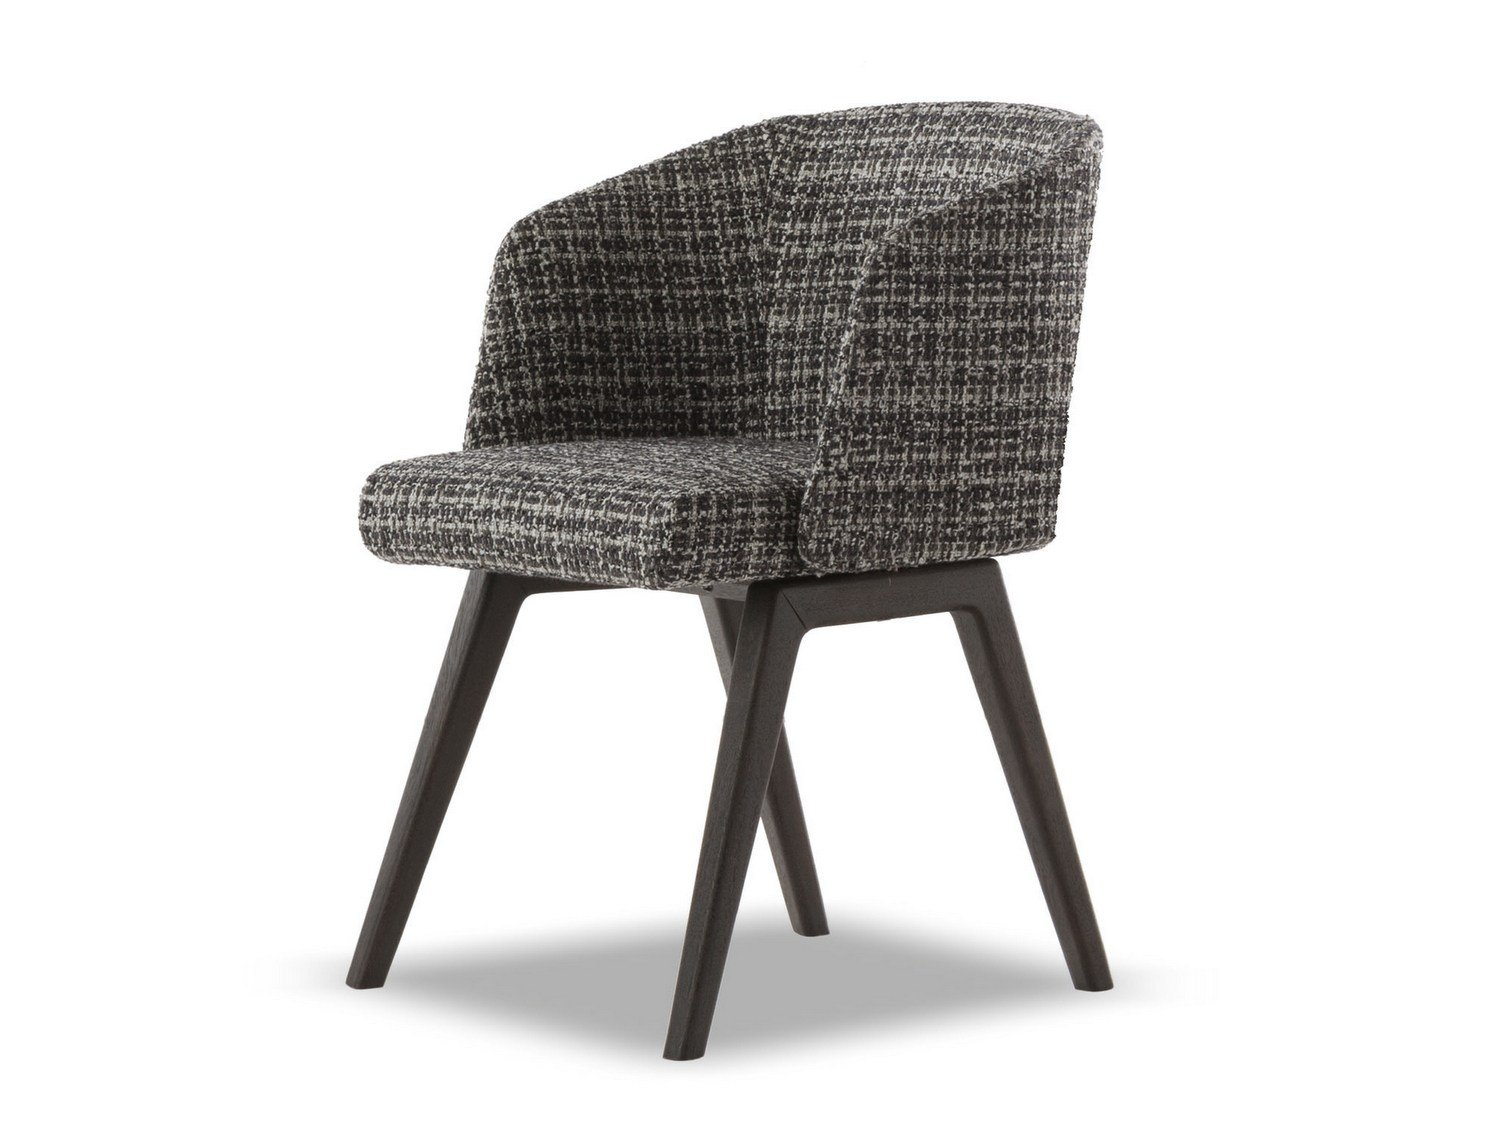 Chair Creed Little Armchair By Minotti